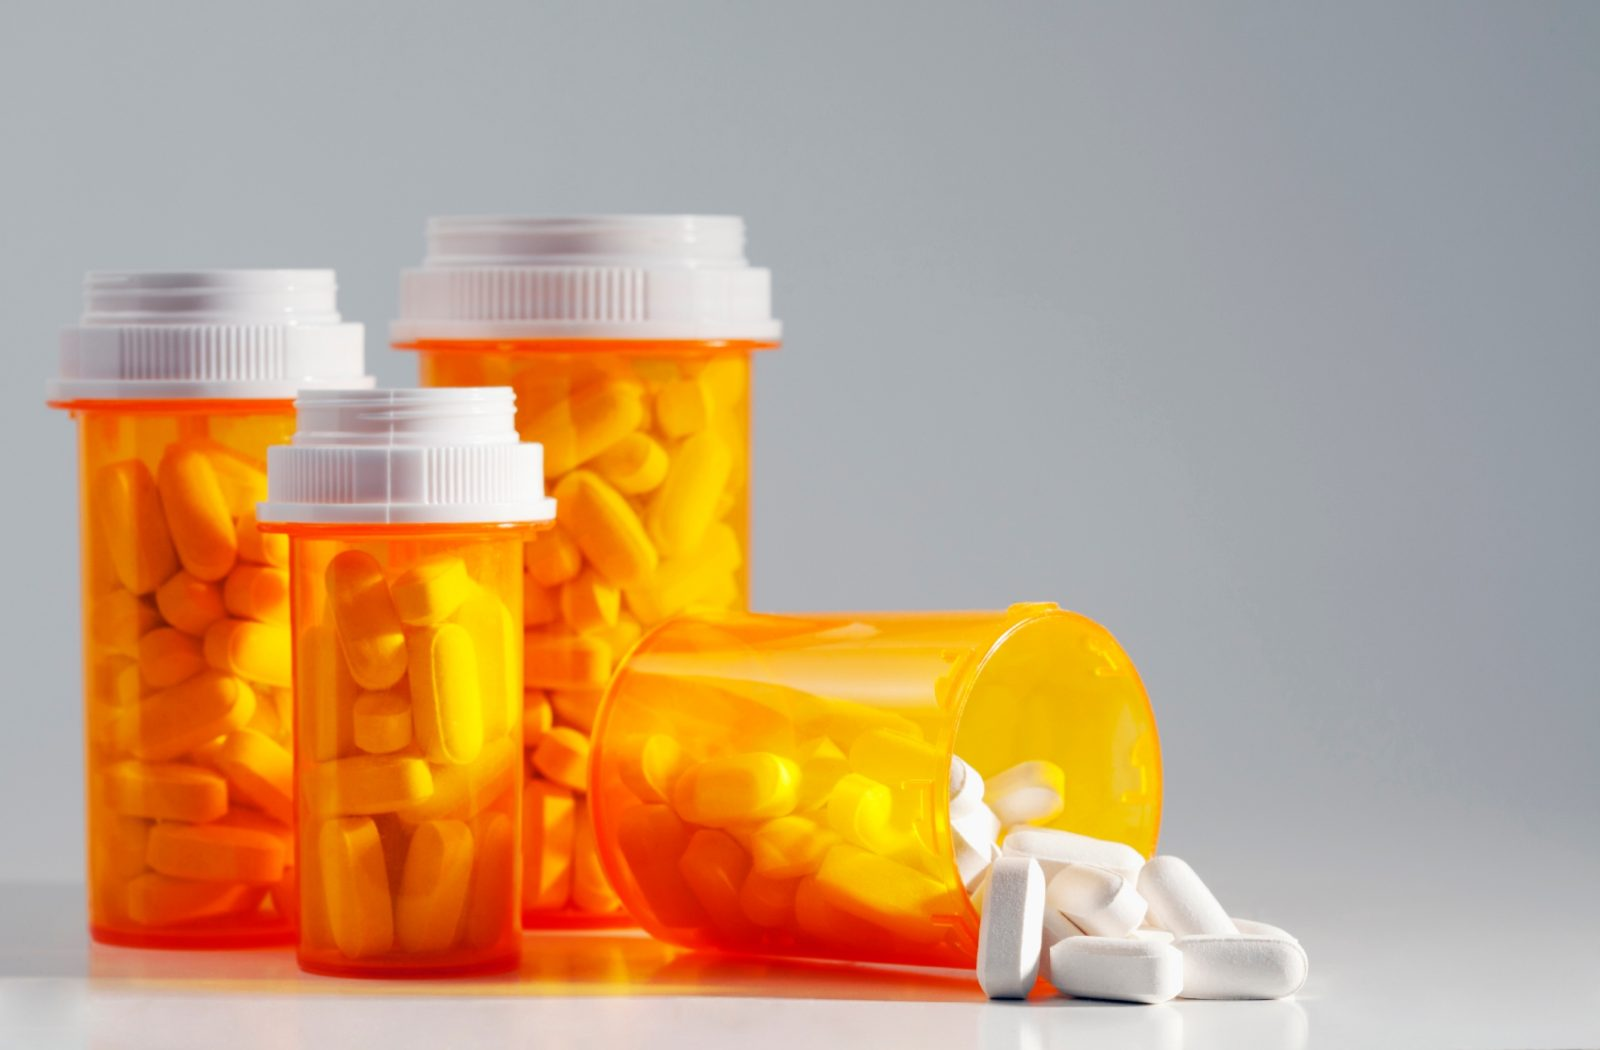 FDA Proposes to Withdraw Lannett and Mallinckrodt's Concerta Bioequivalents